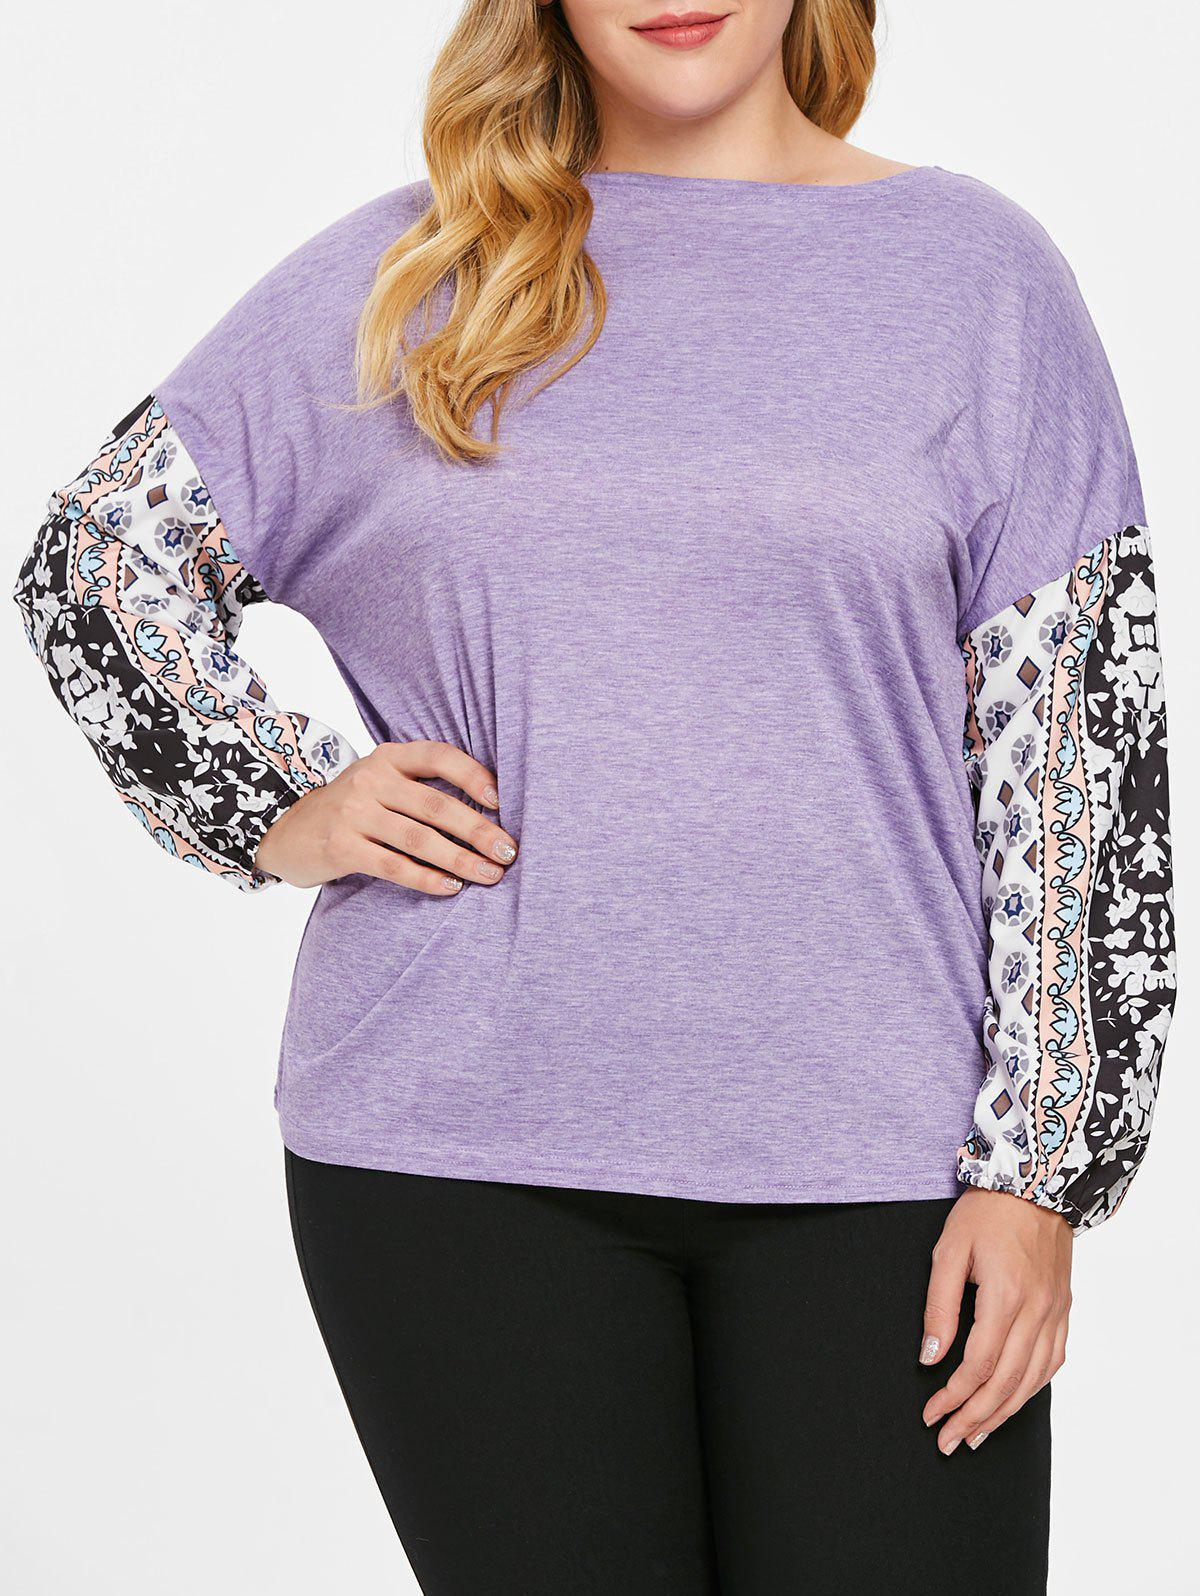 Fashion Plus Size Long Sleeves Graphic Tee